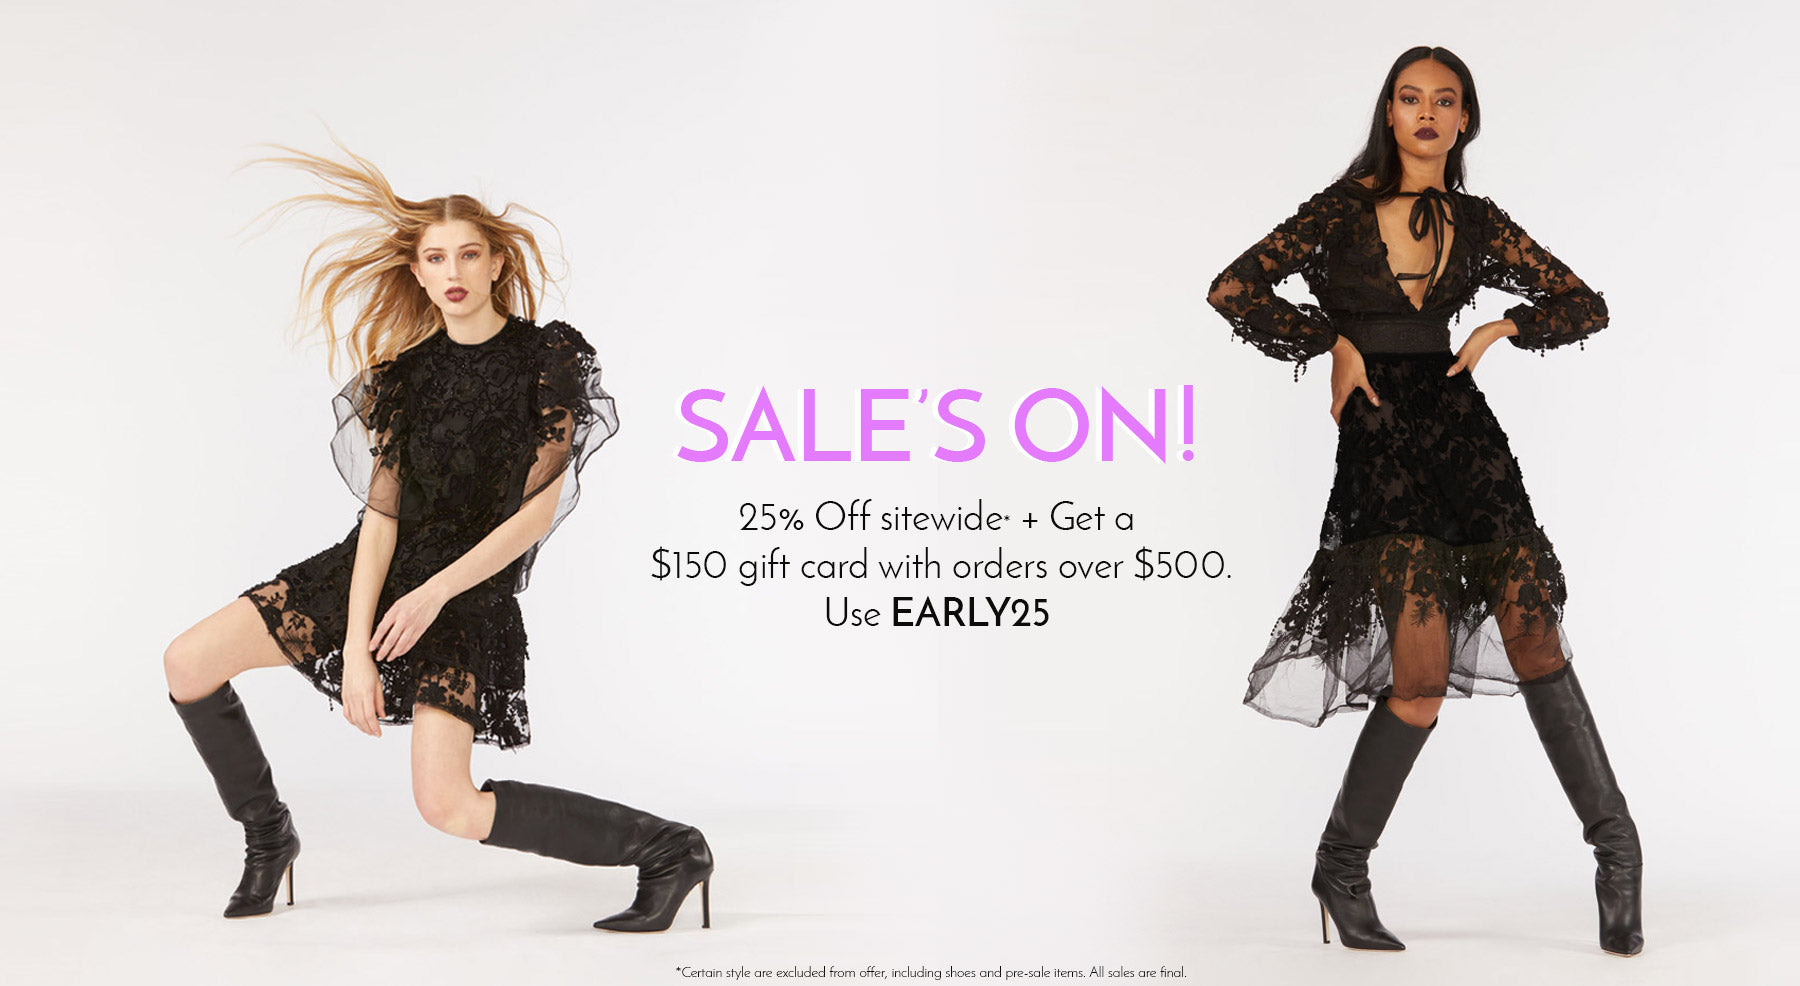 Black lace dresses with overlaid text: 'Sale's on! 25% off sitewide plus get a $150 gift card with orders over $500'.